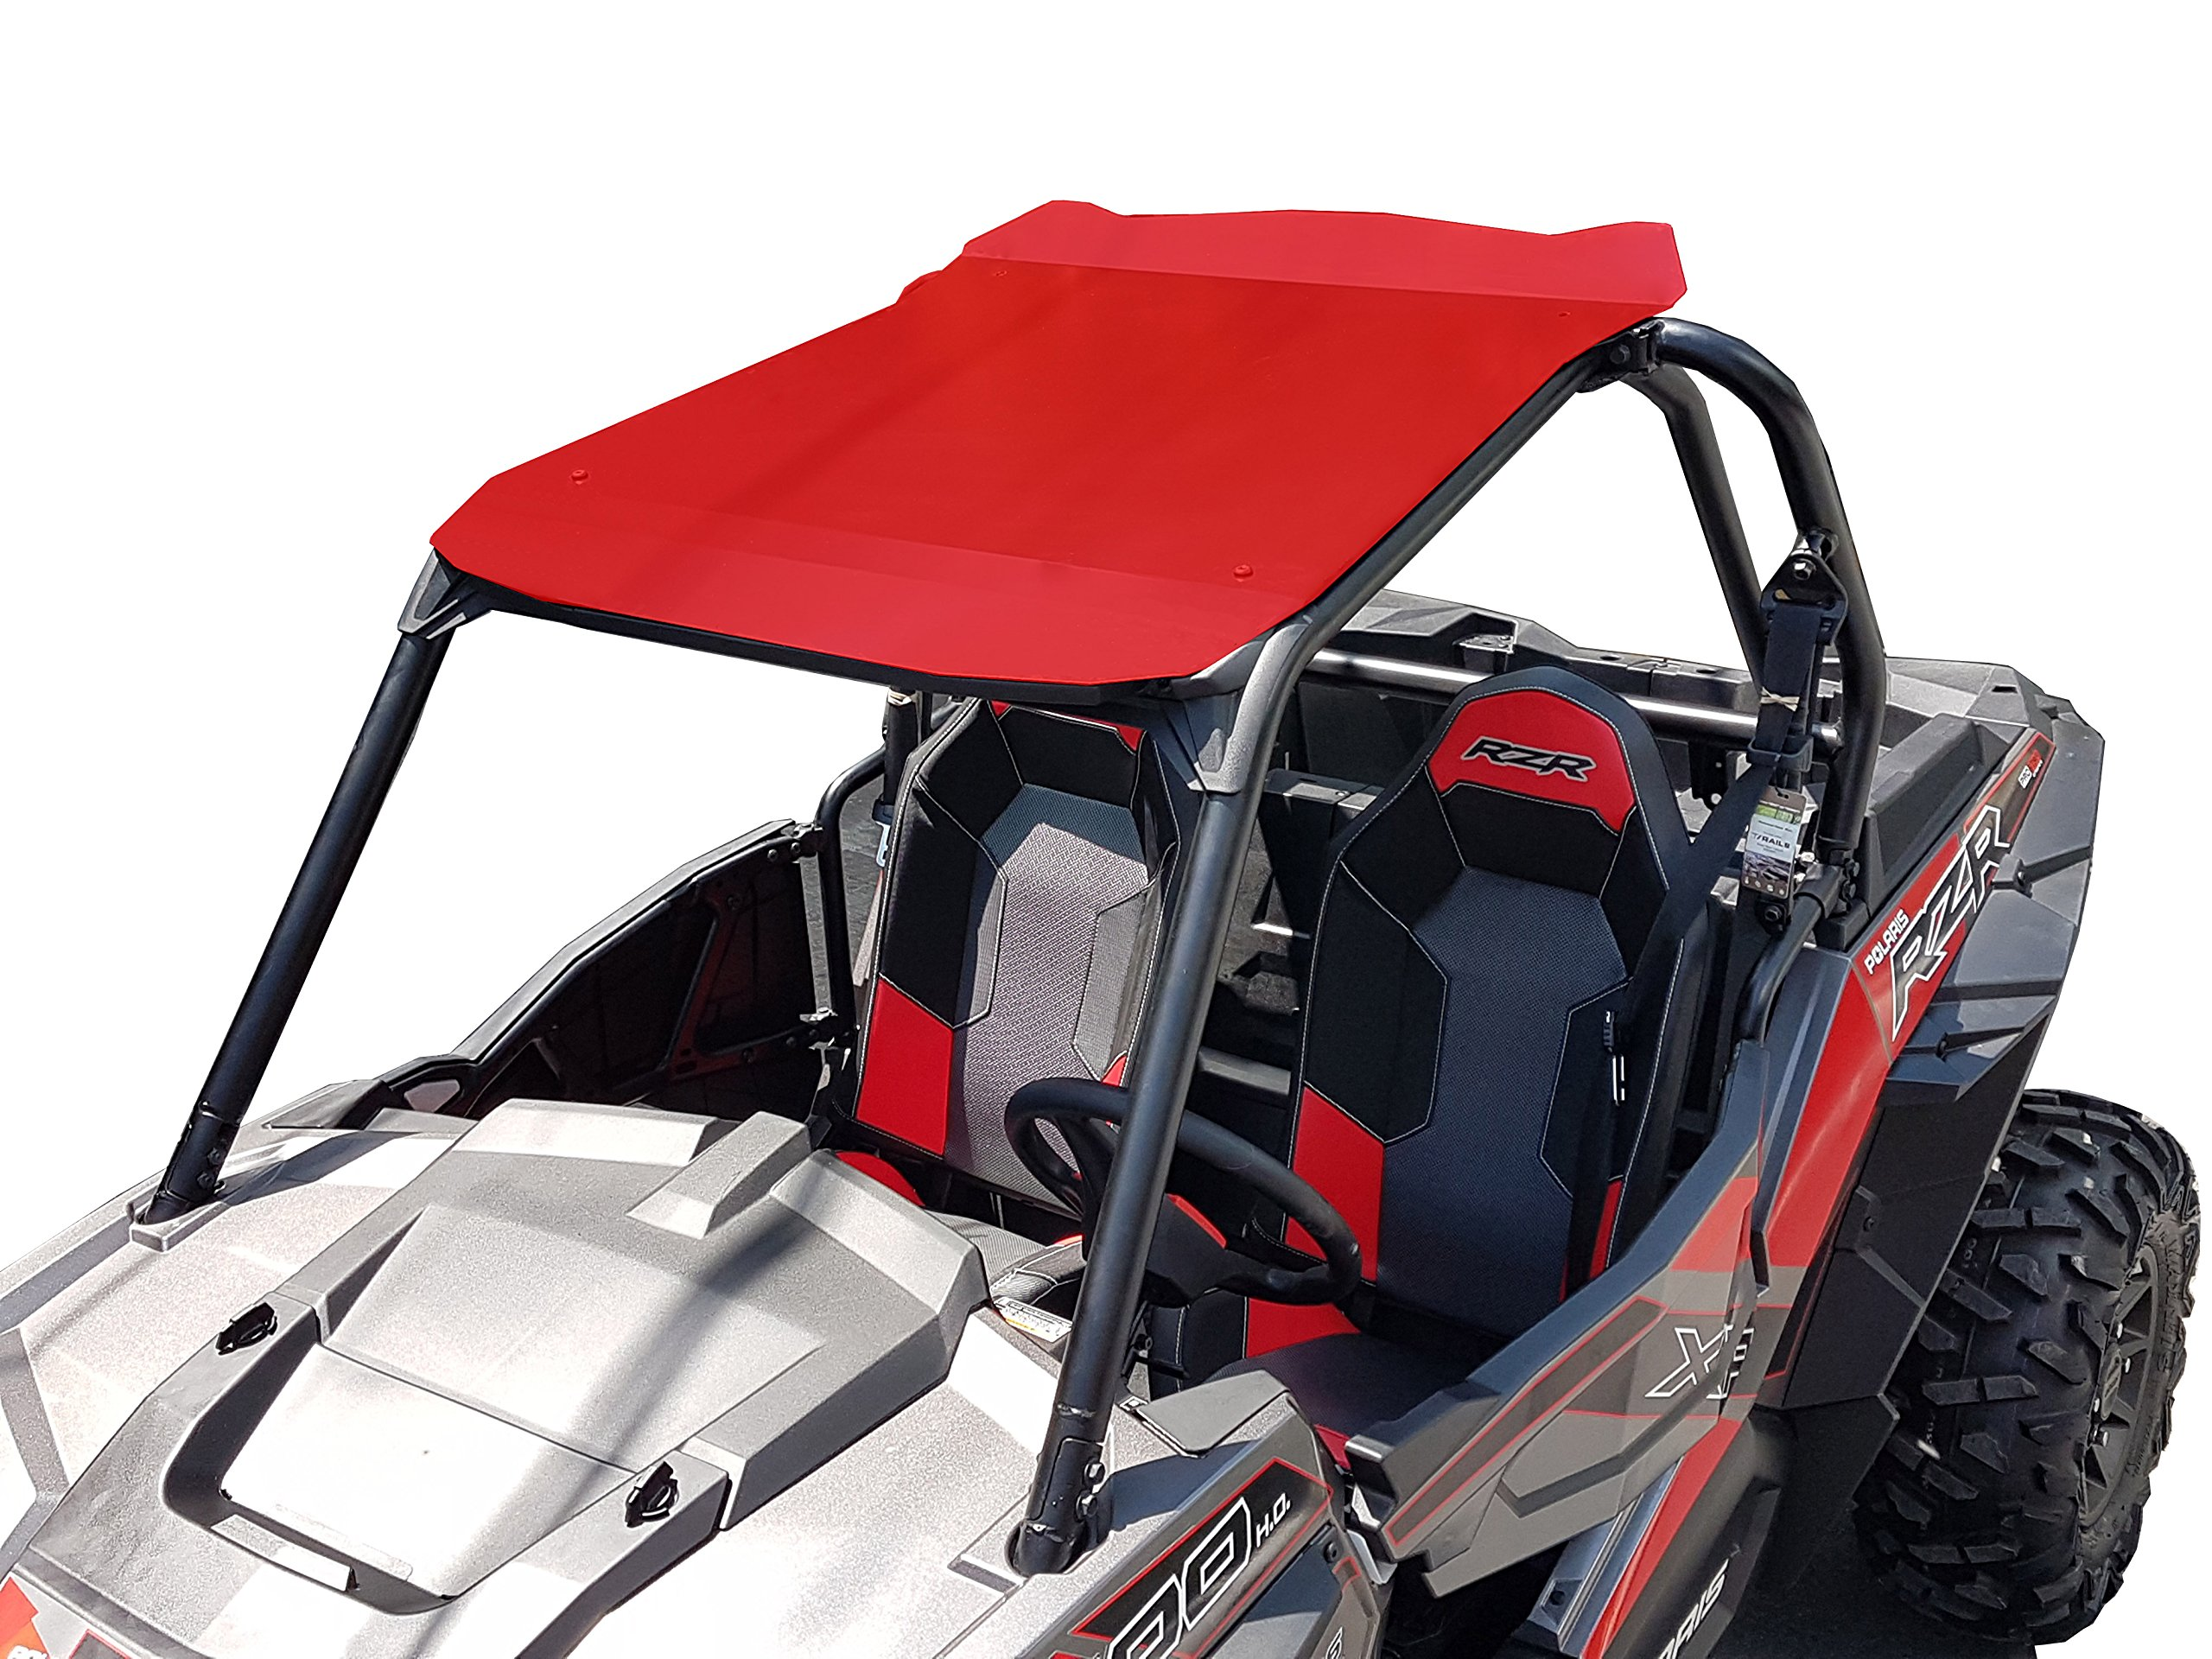 Polaris RZR XP 900/1000 Aluminum Roof 2 Seats Red